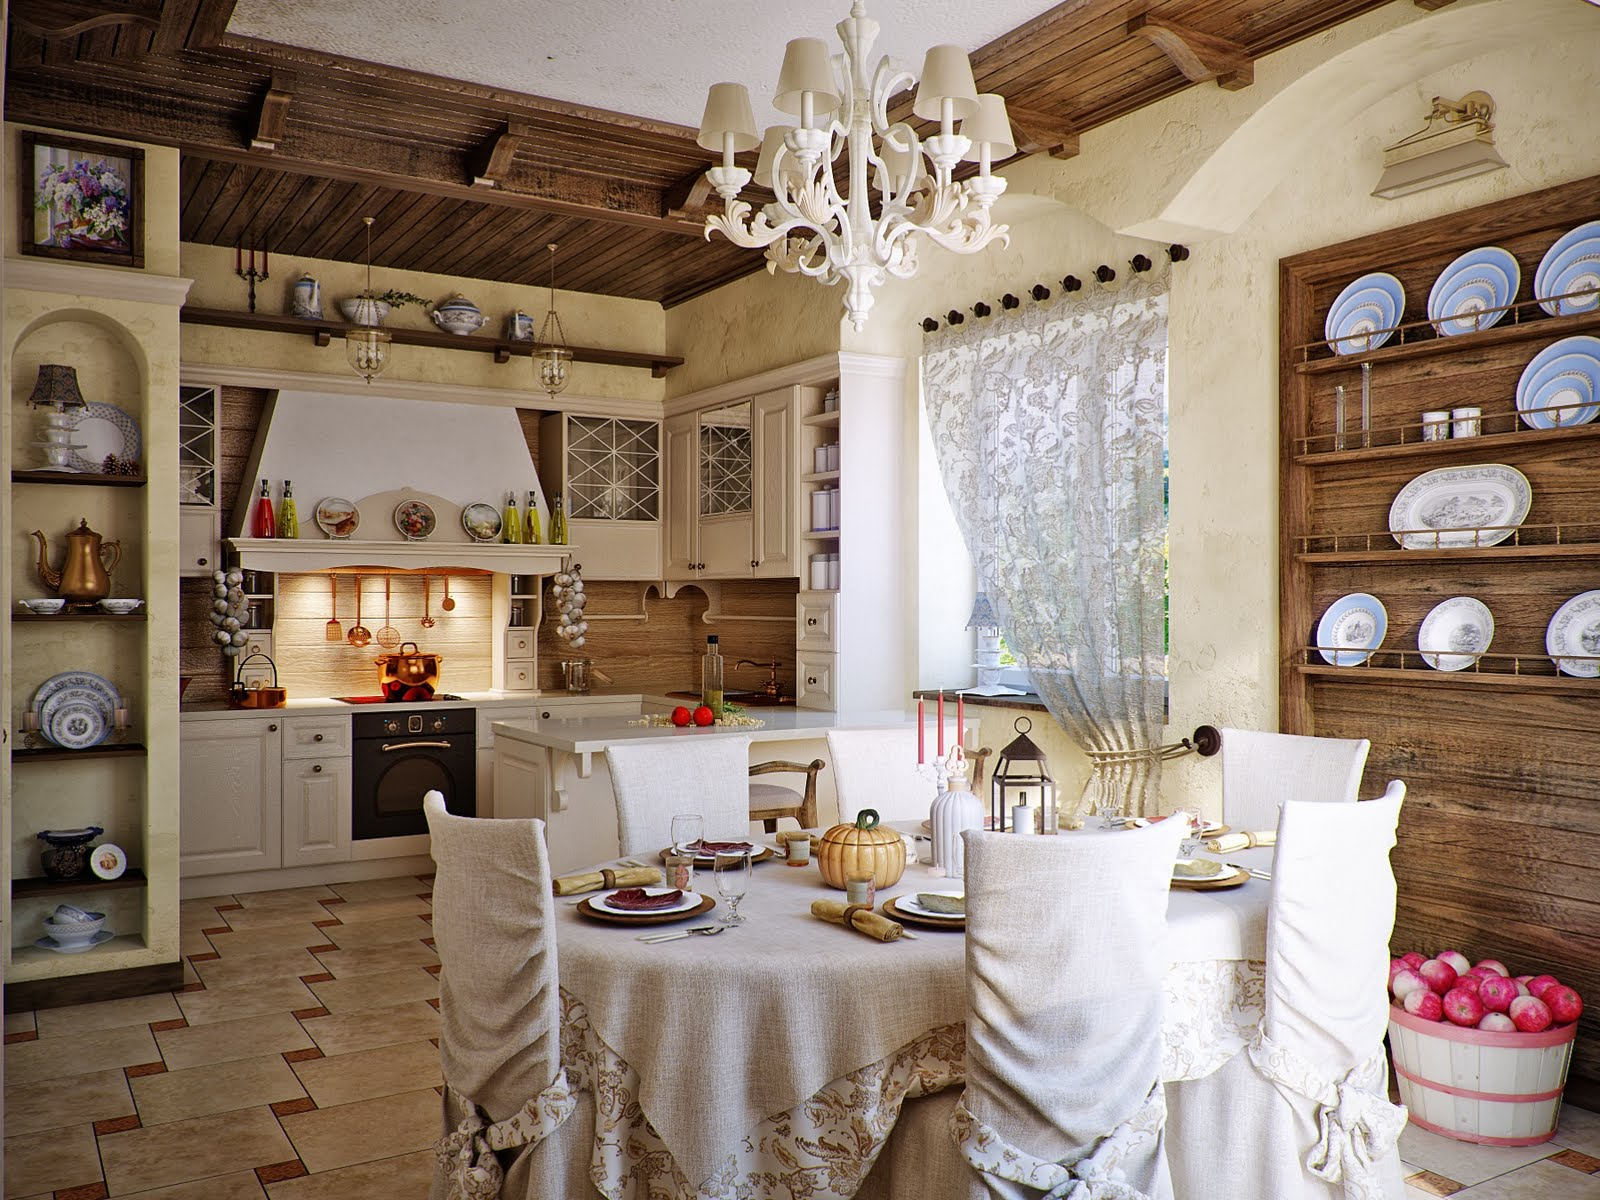 Attractive country kitchen designs ideas that inspire you - Kitchen interior desing ...